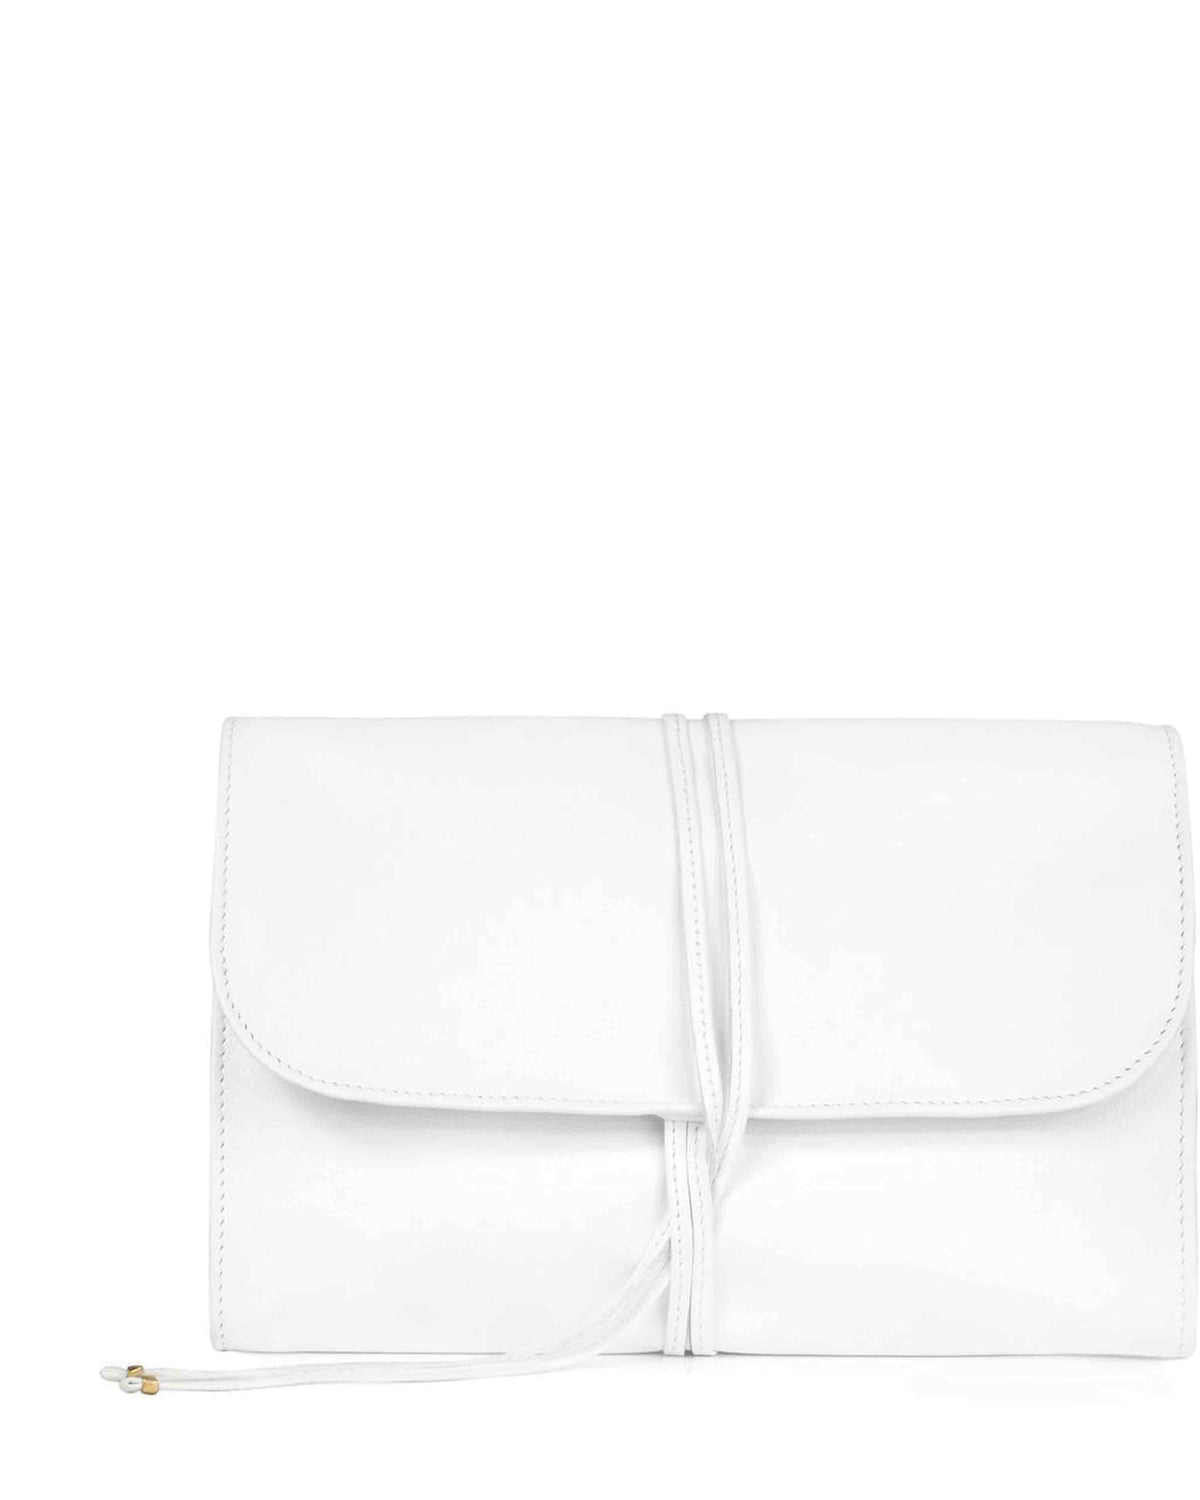 JEWELRY ROLL in White Napa Leather